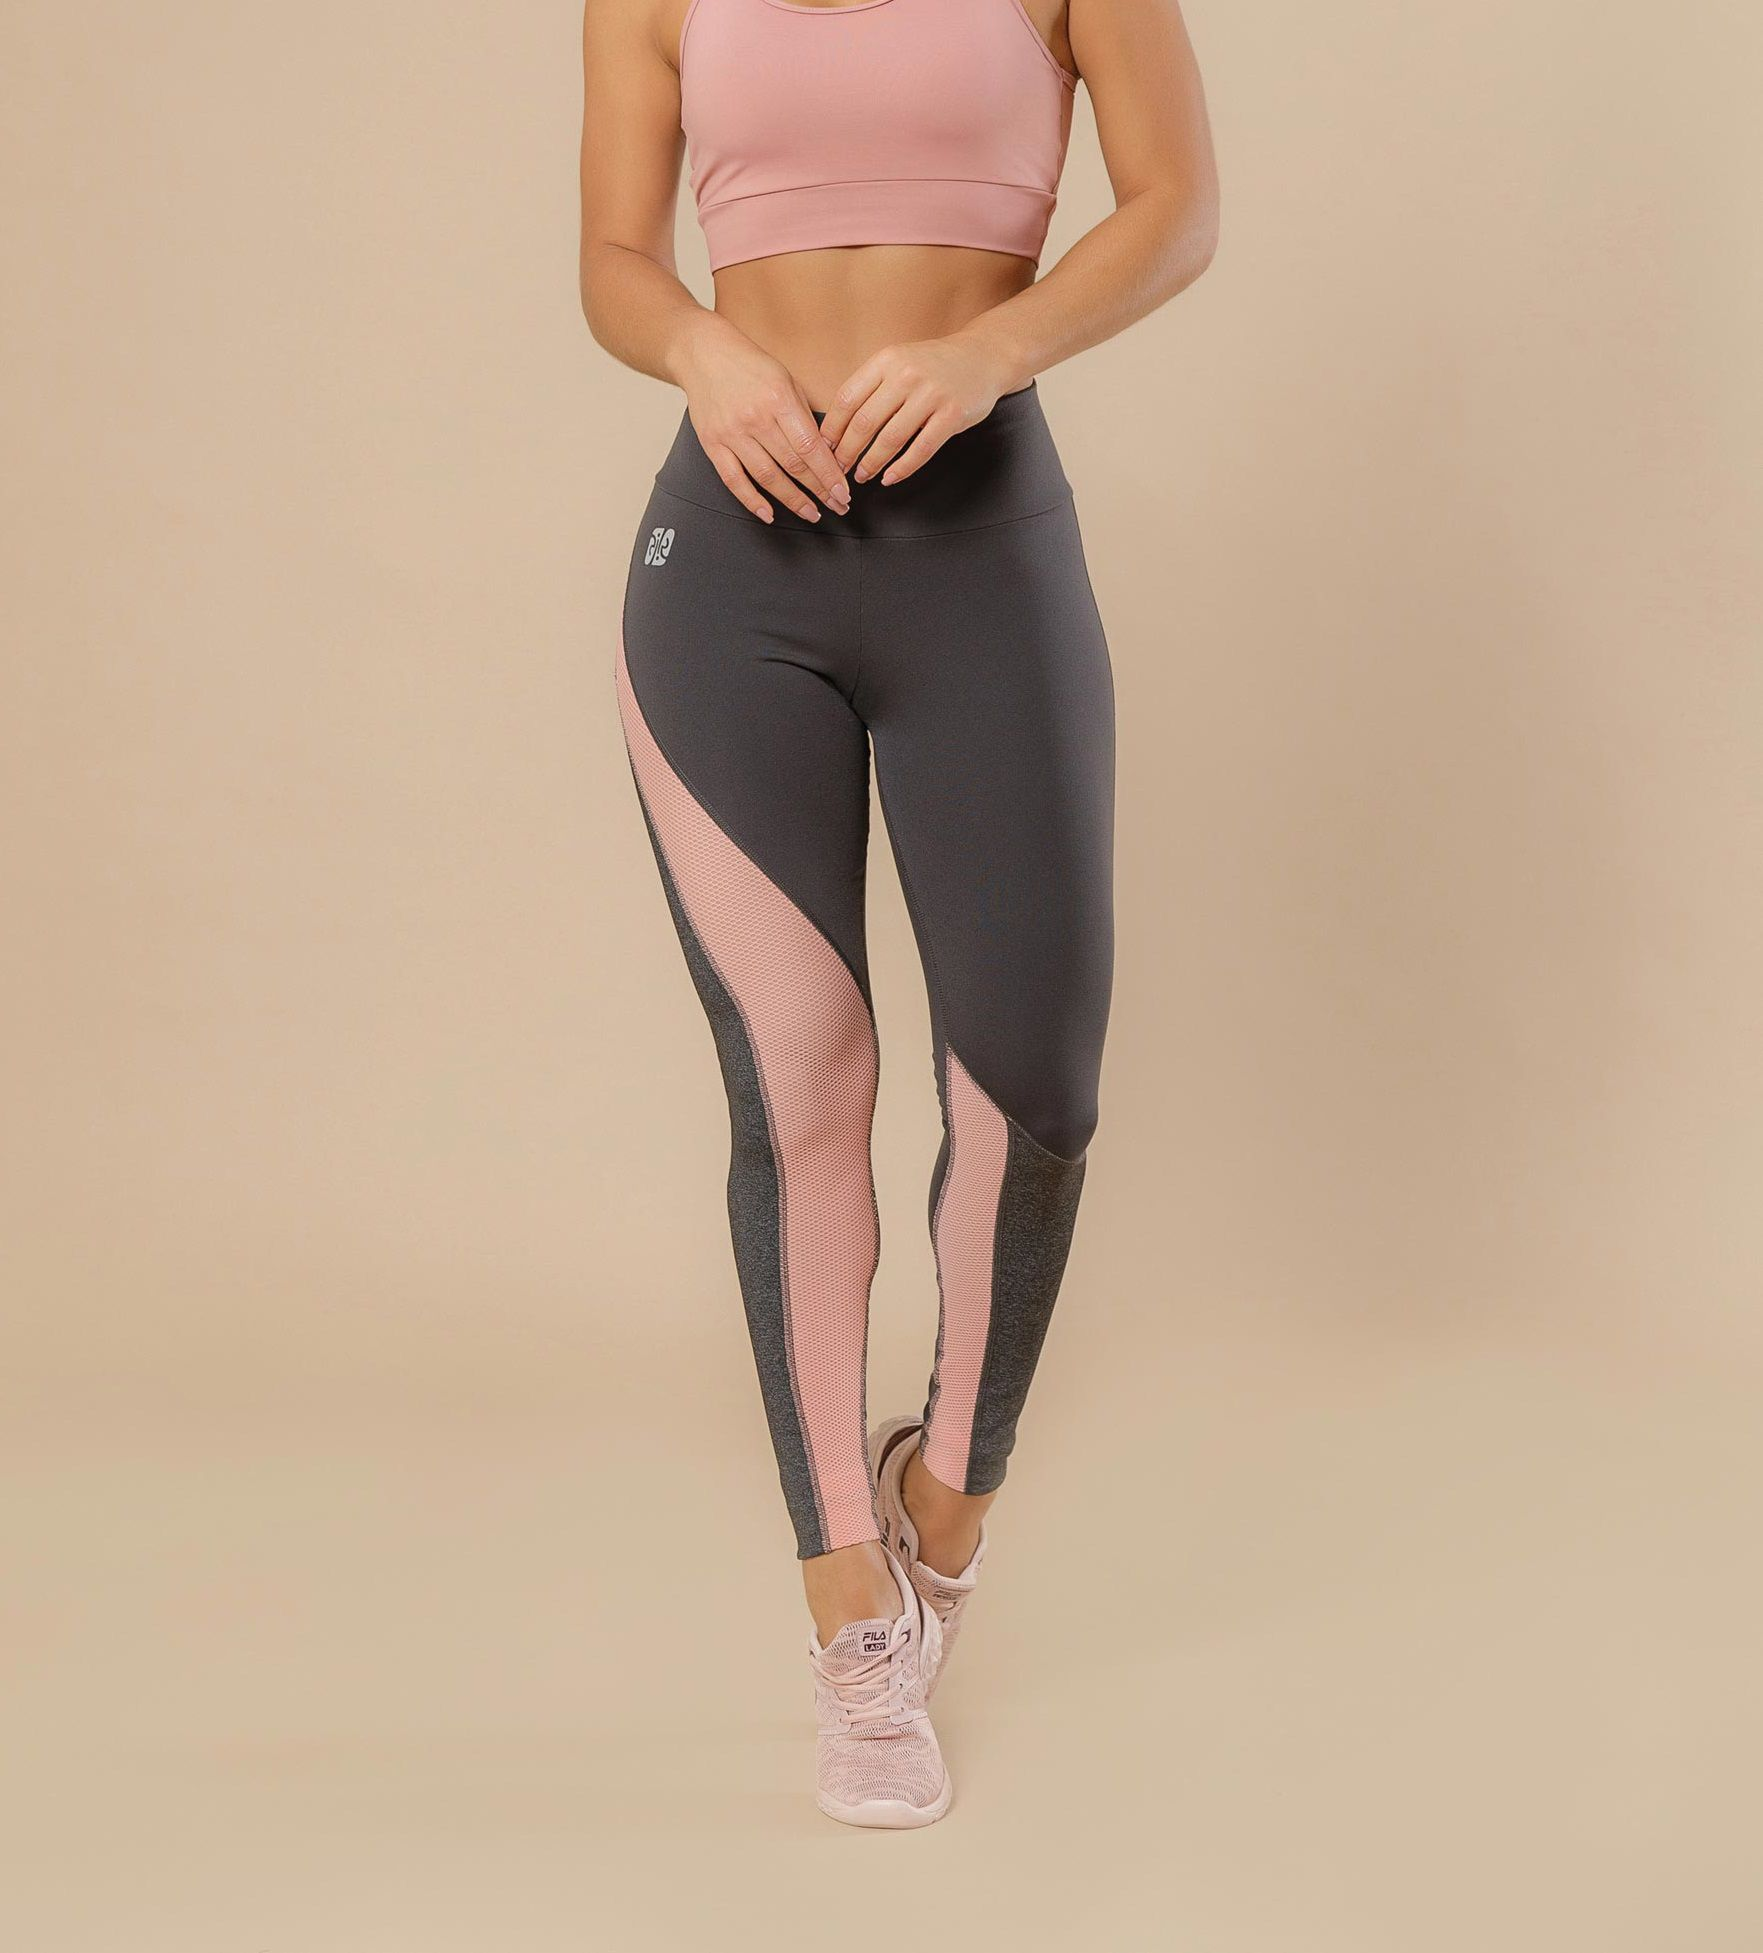 Legging Supplex Tela